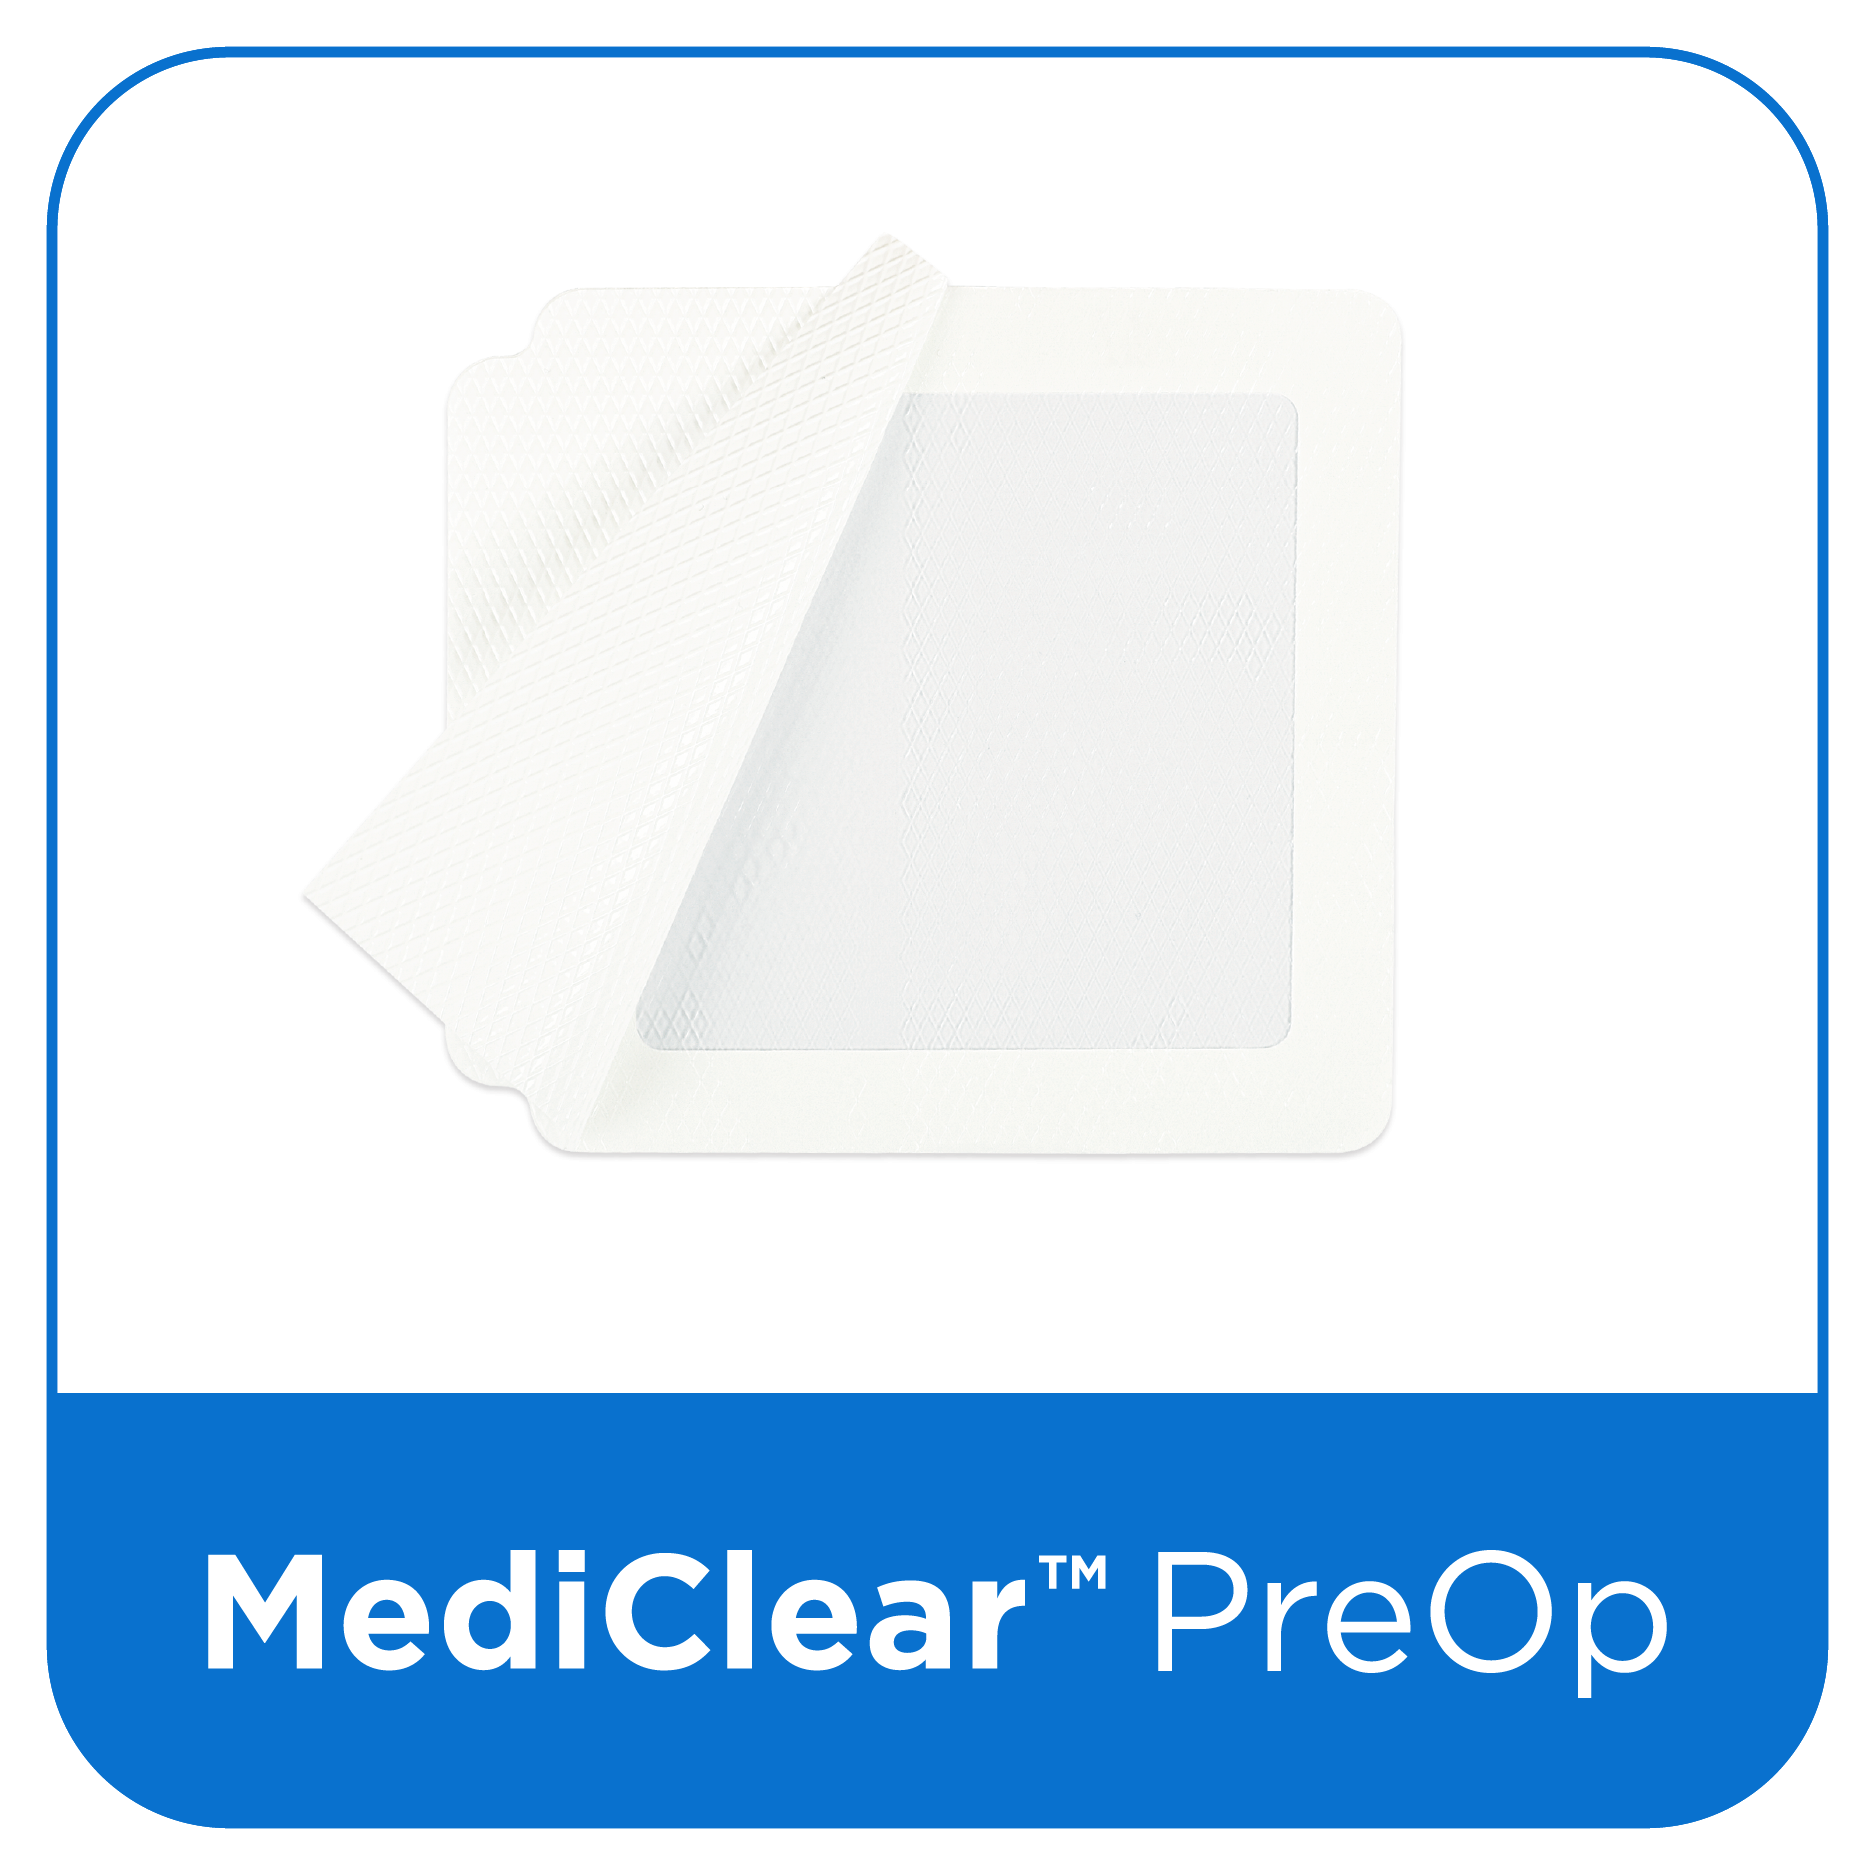 MediClear_PreOp.png